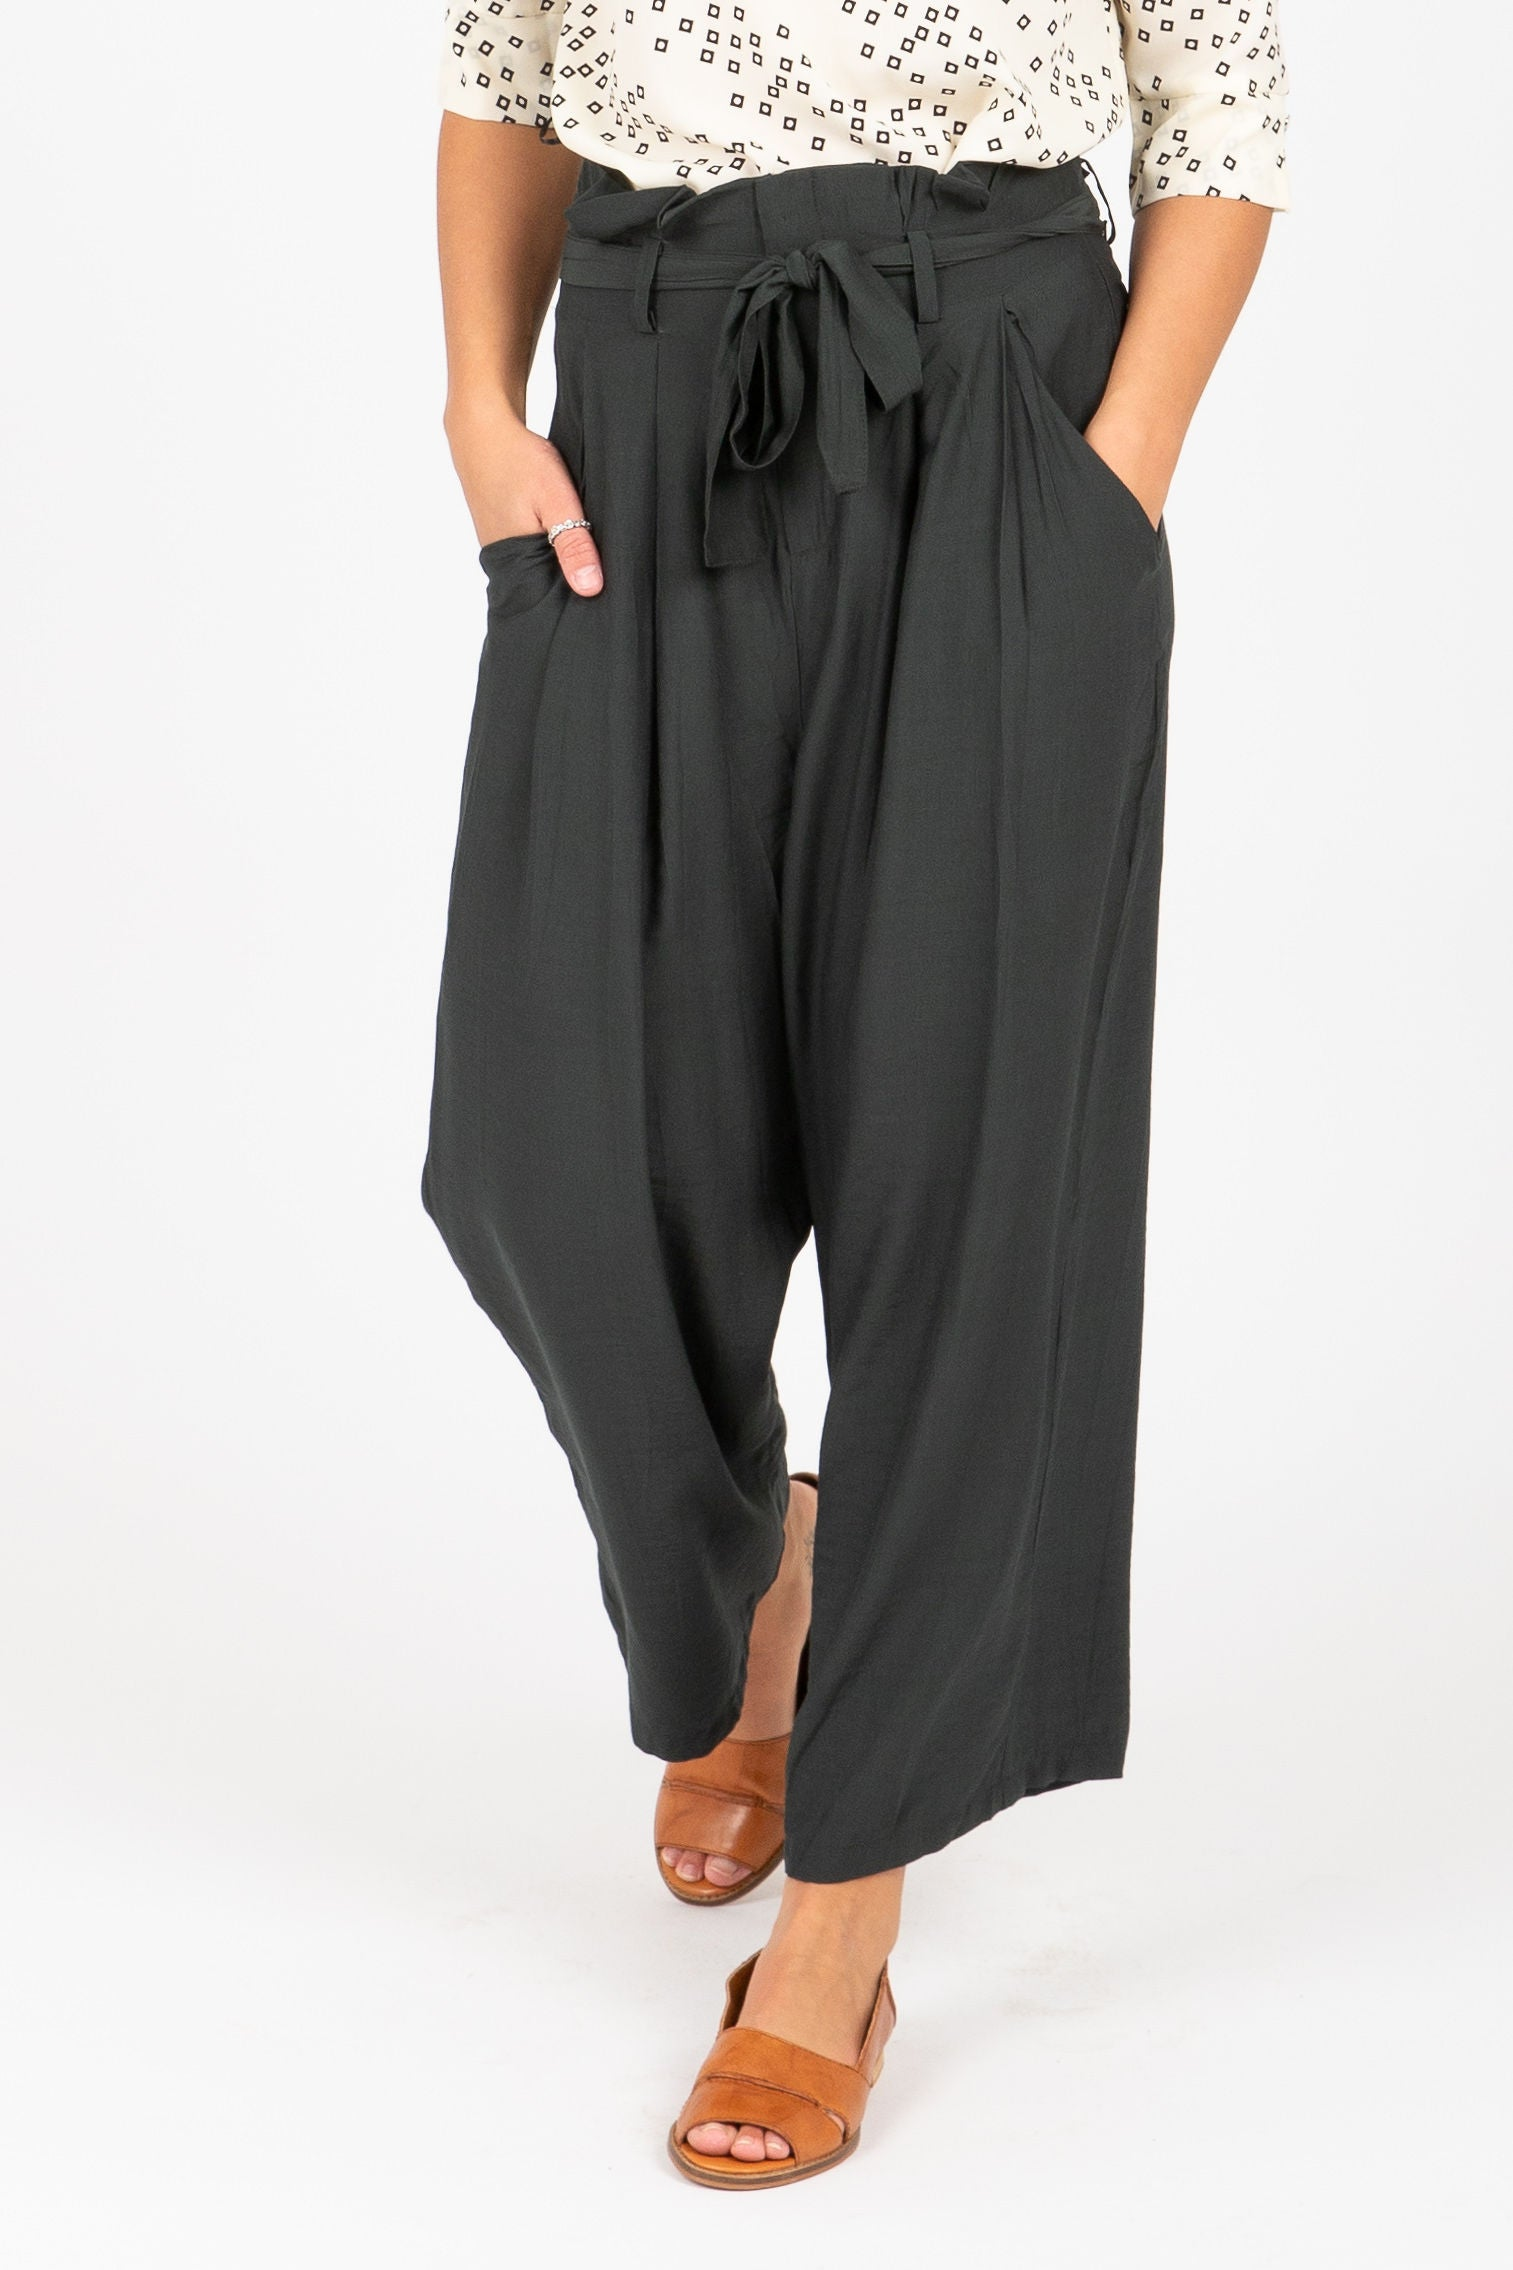 The Kapish High Waisted Casual Trouser in Deep Forest